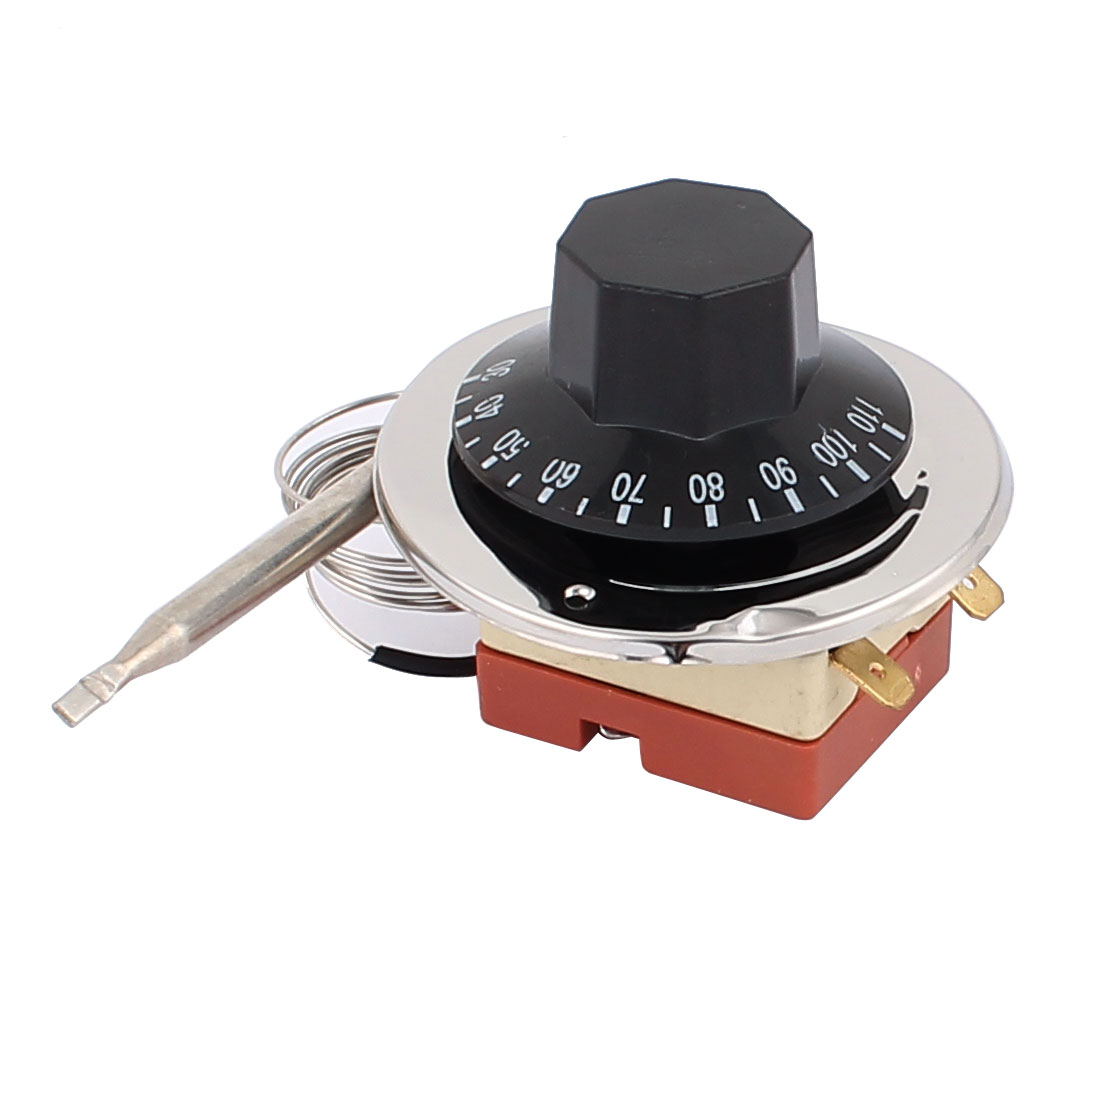 AC 250V 16A 30-110 Celsius NC Plastic Rotary Knob Adjustable Temperature Control Switch Thermostat